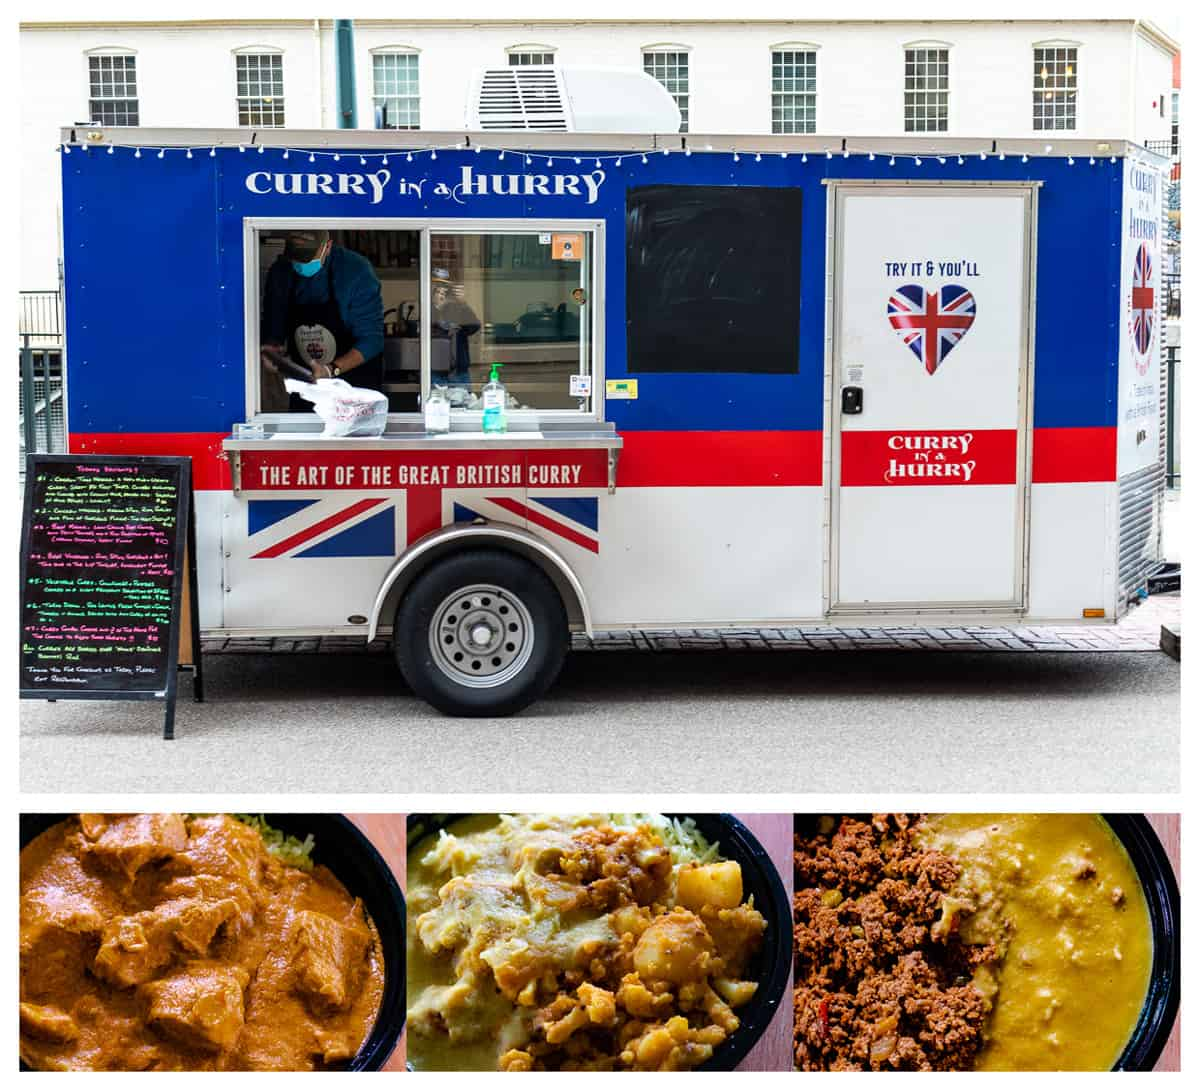 Curry in a Hurry food truck and curries